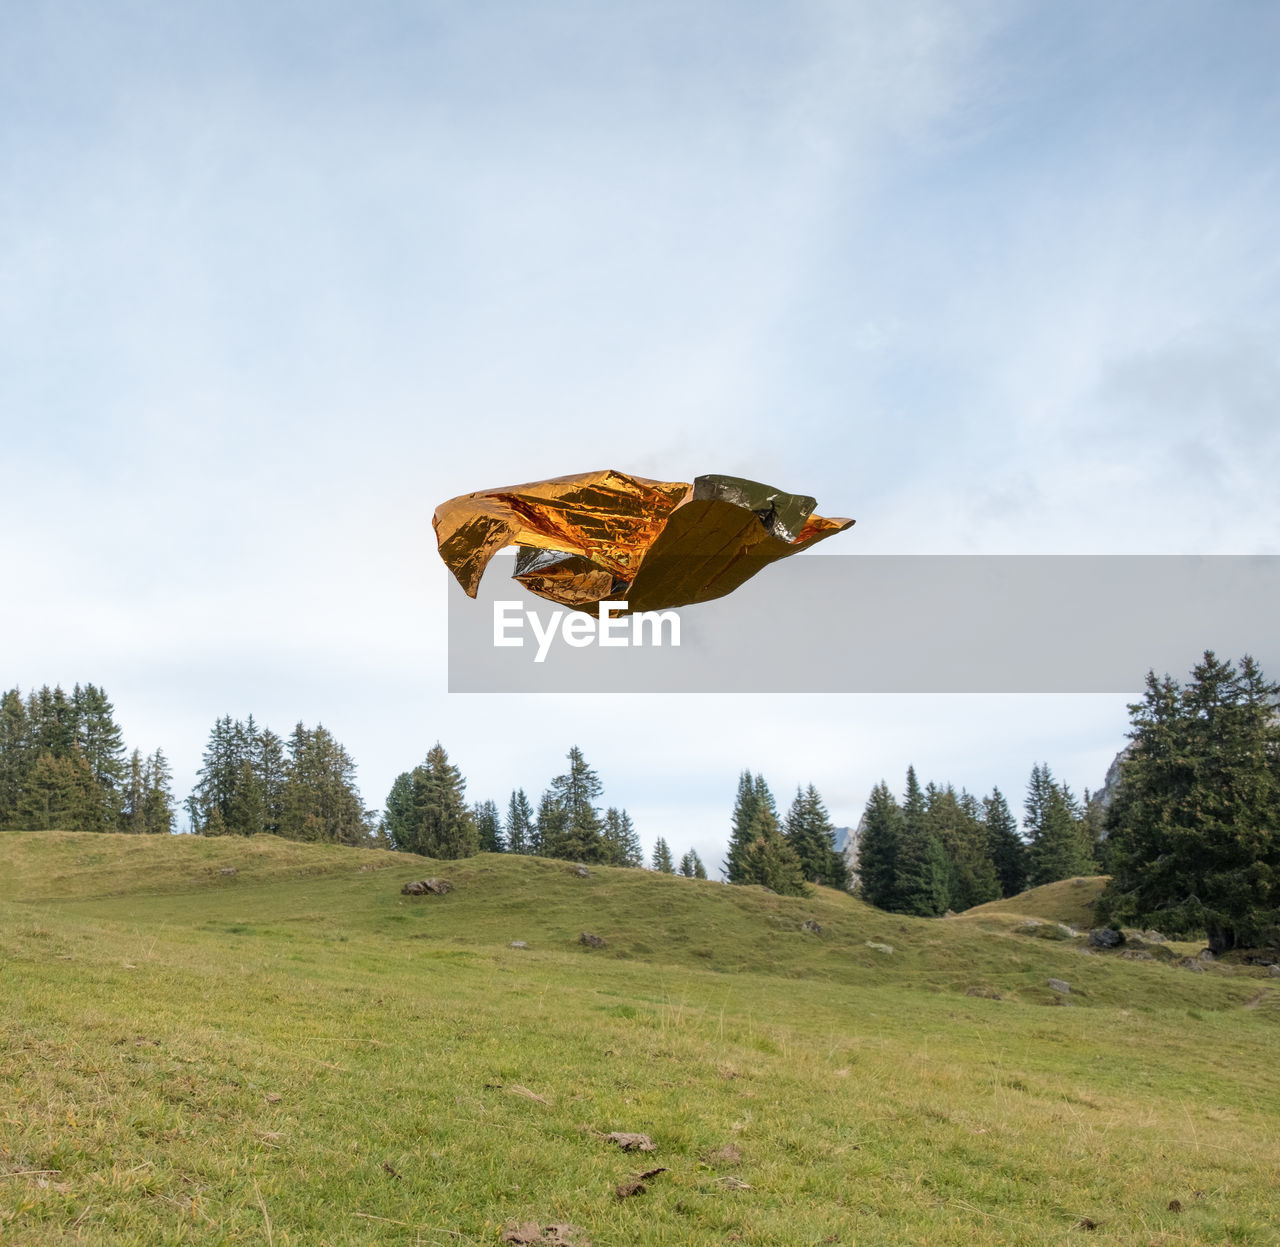 Foil Flying Over Grassy Field Against Sky